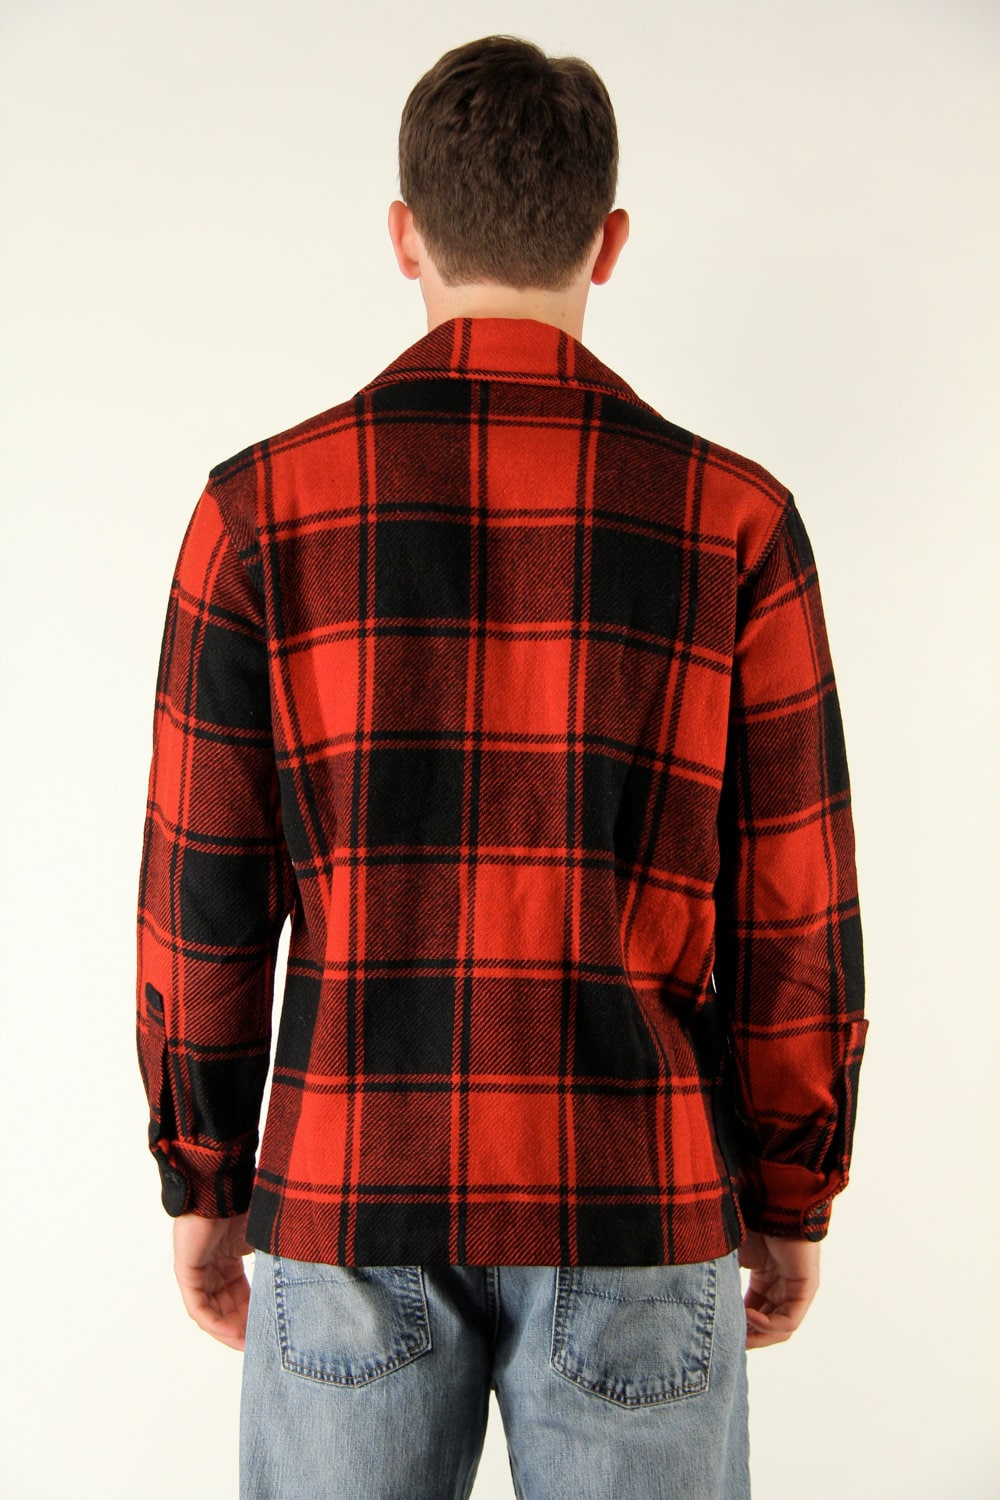 Vintage 1950s Maine Guide Lumberjack Buffalo Plaid Red Black